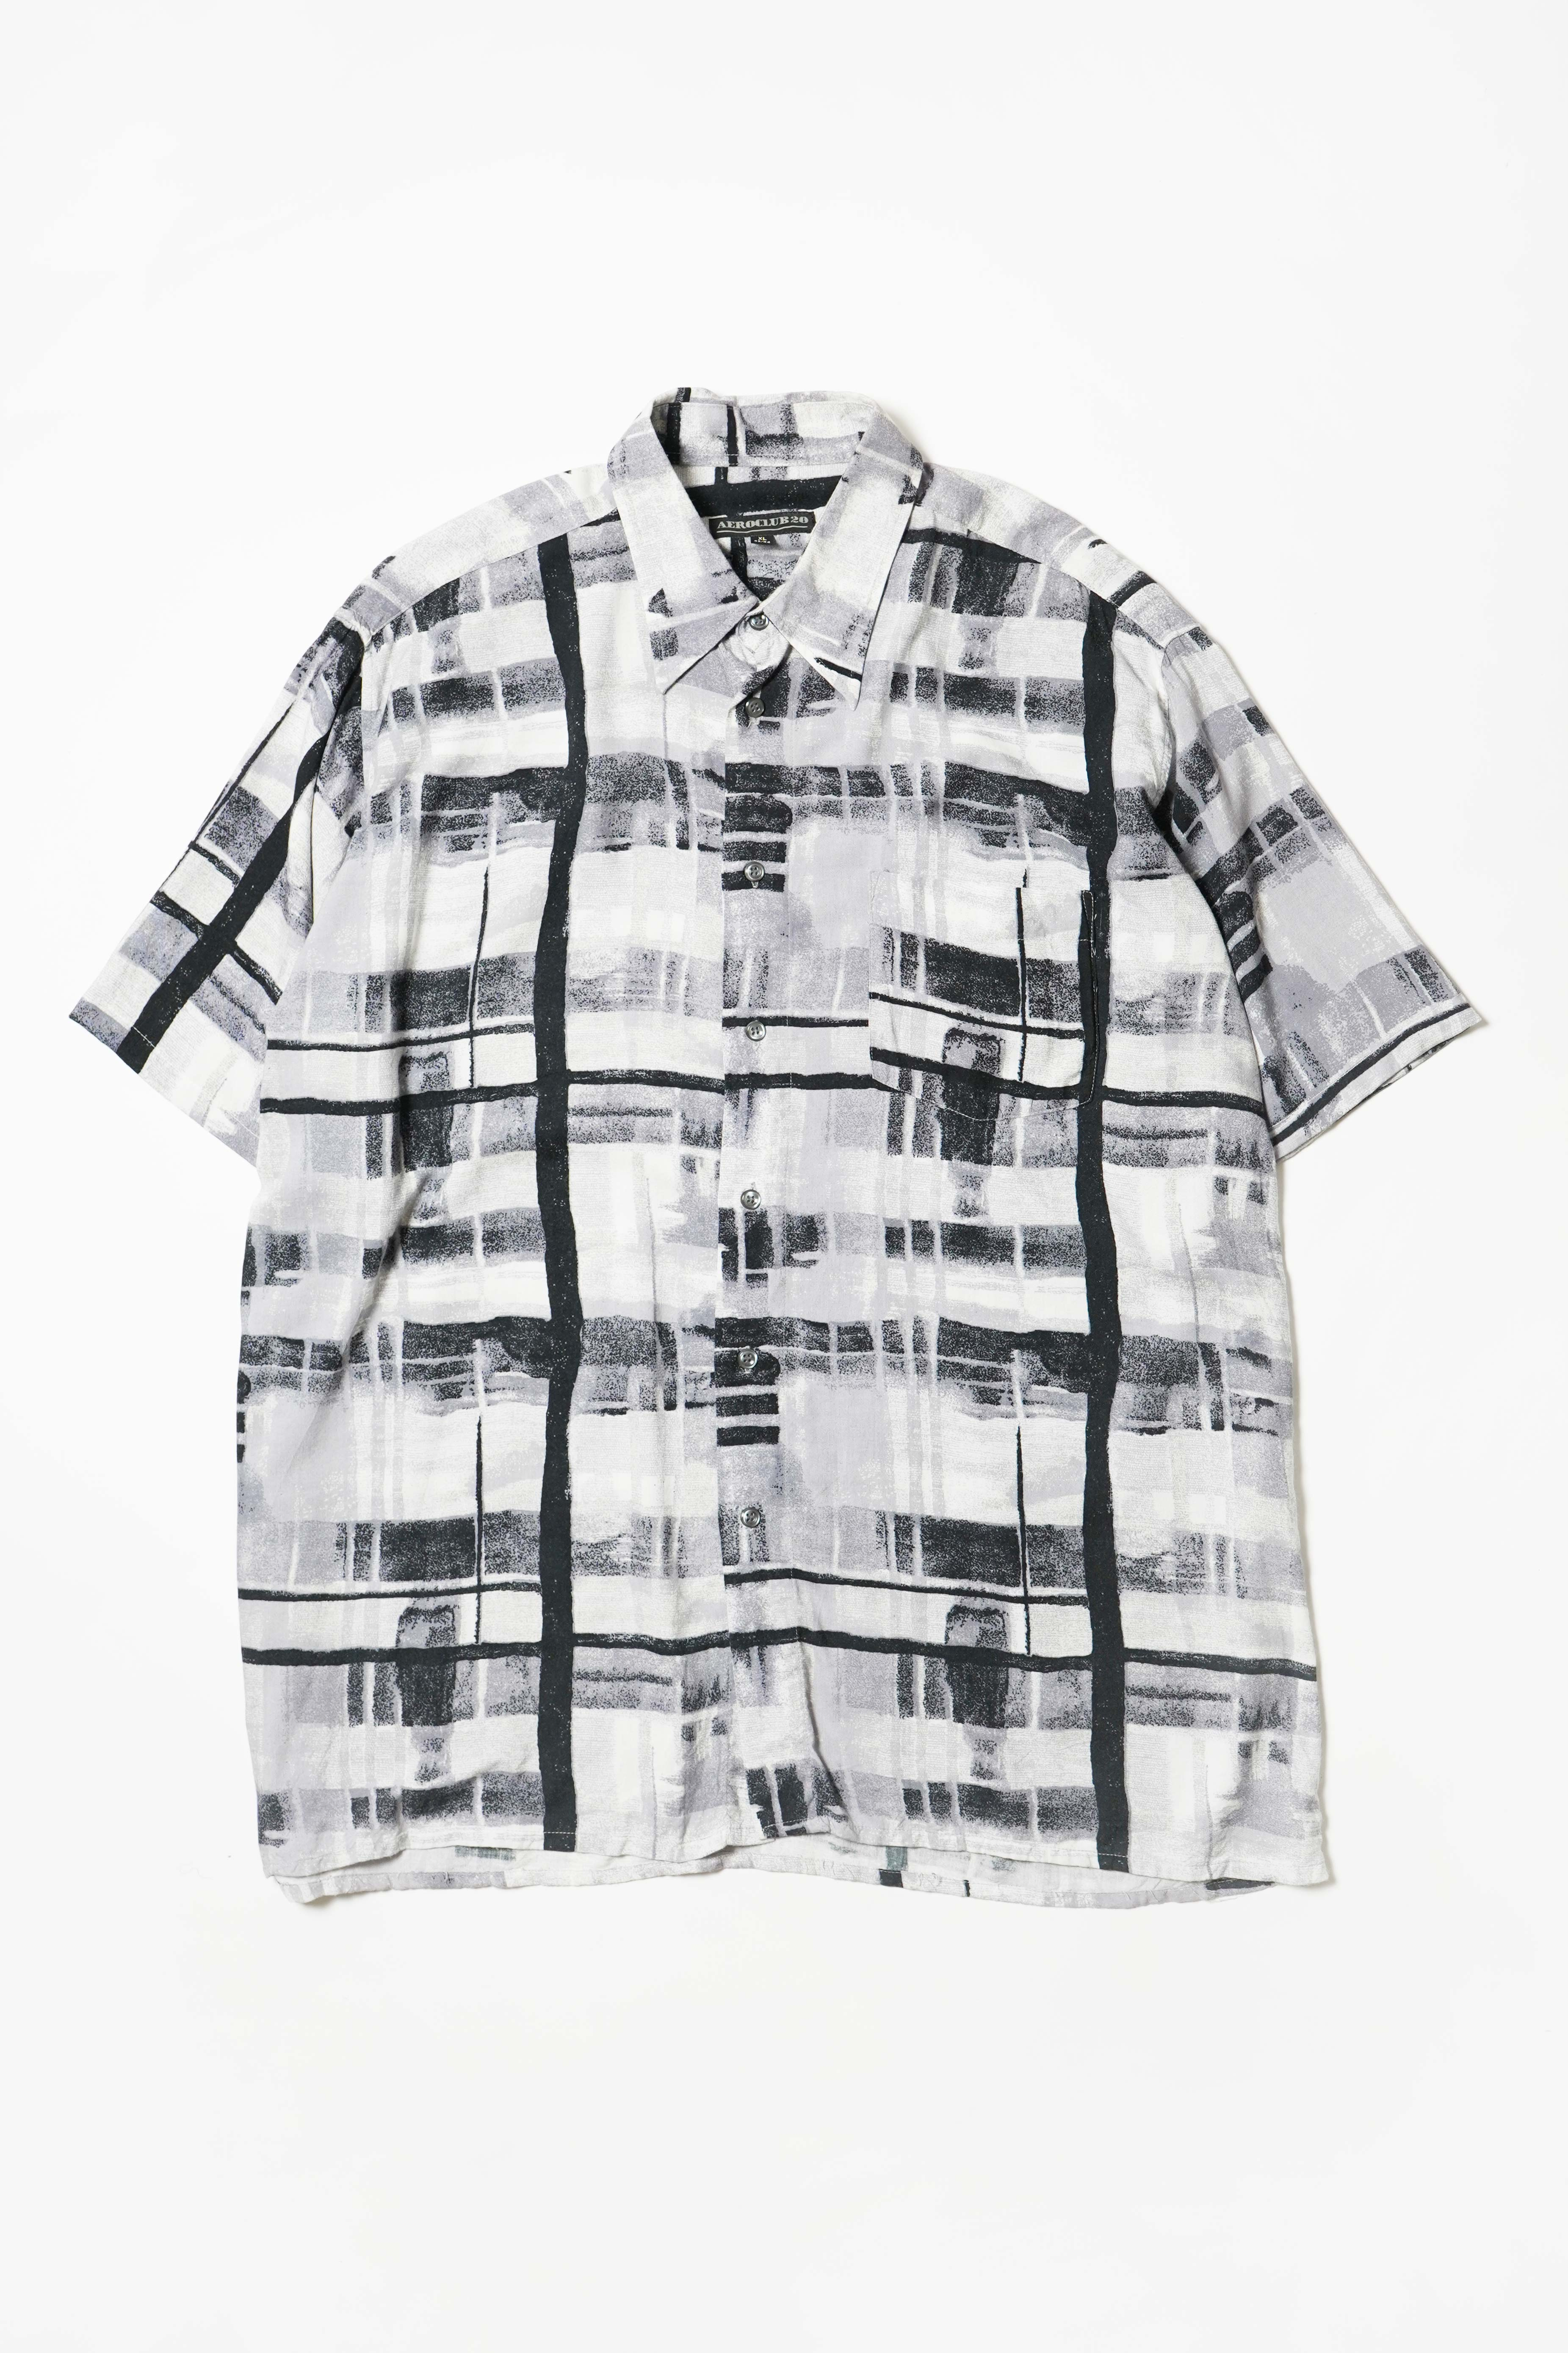 GREY DESIGN S/S SHIRT